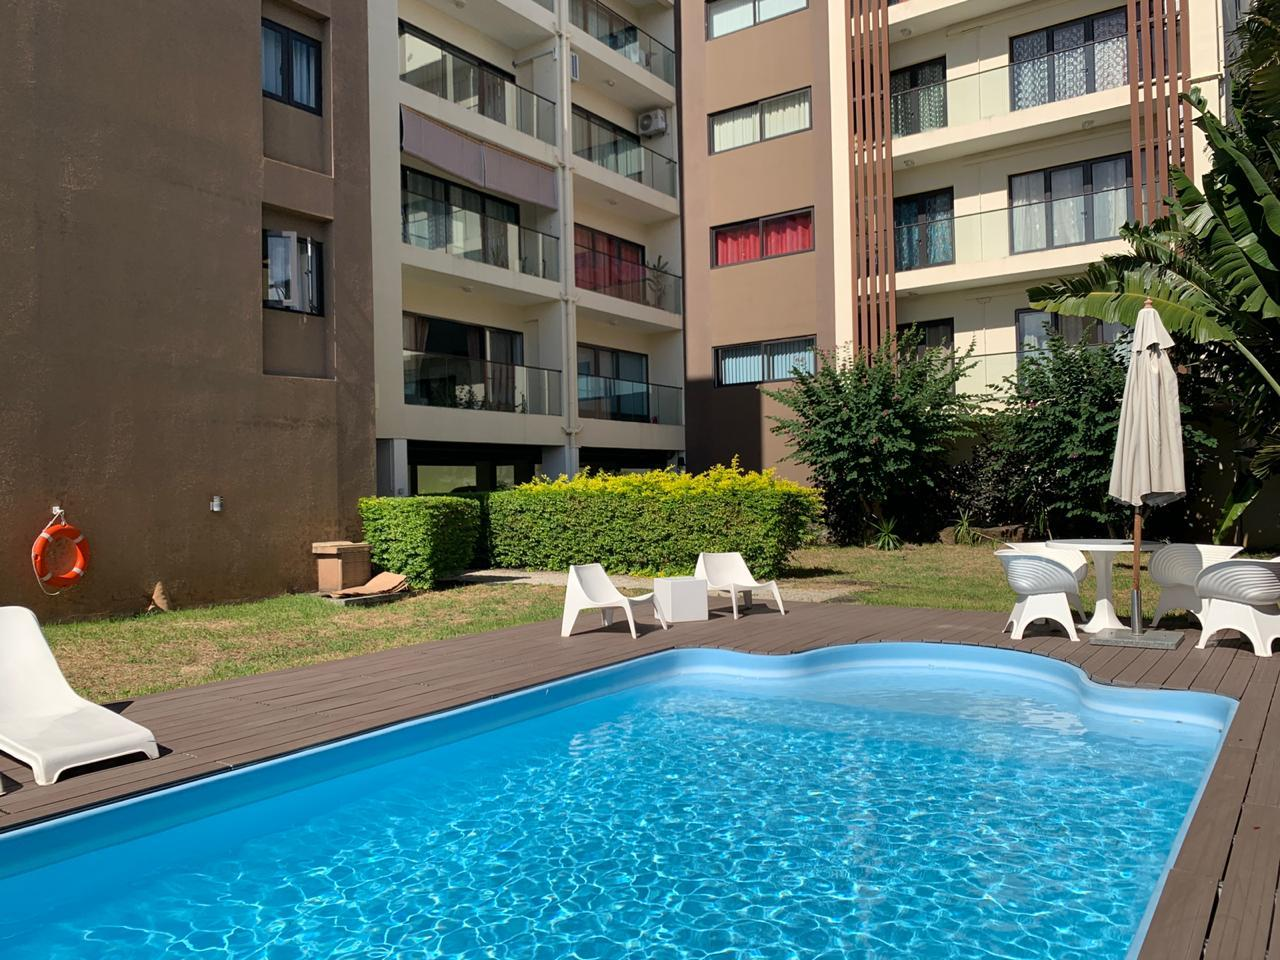 3 Bedroom Apartment / Flat For Sale in Flic En Flac